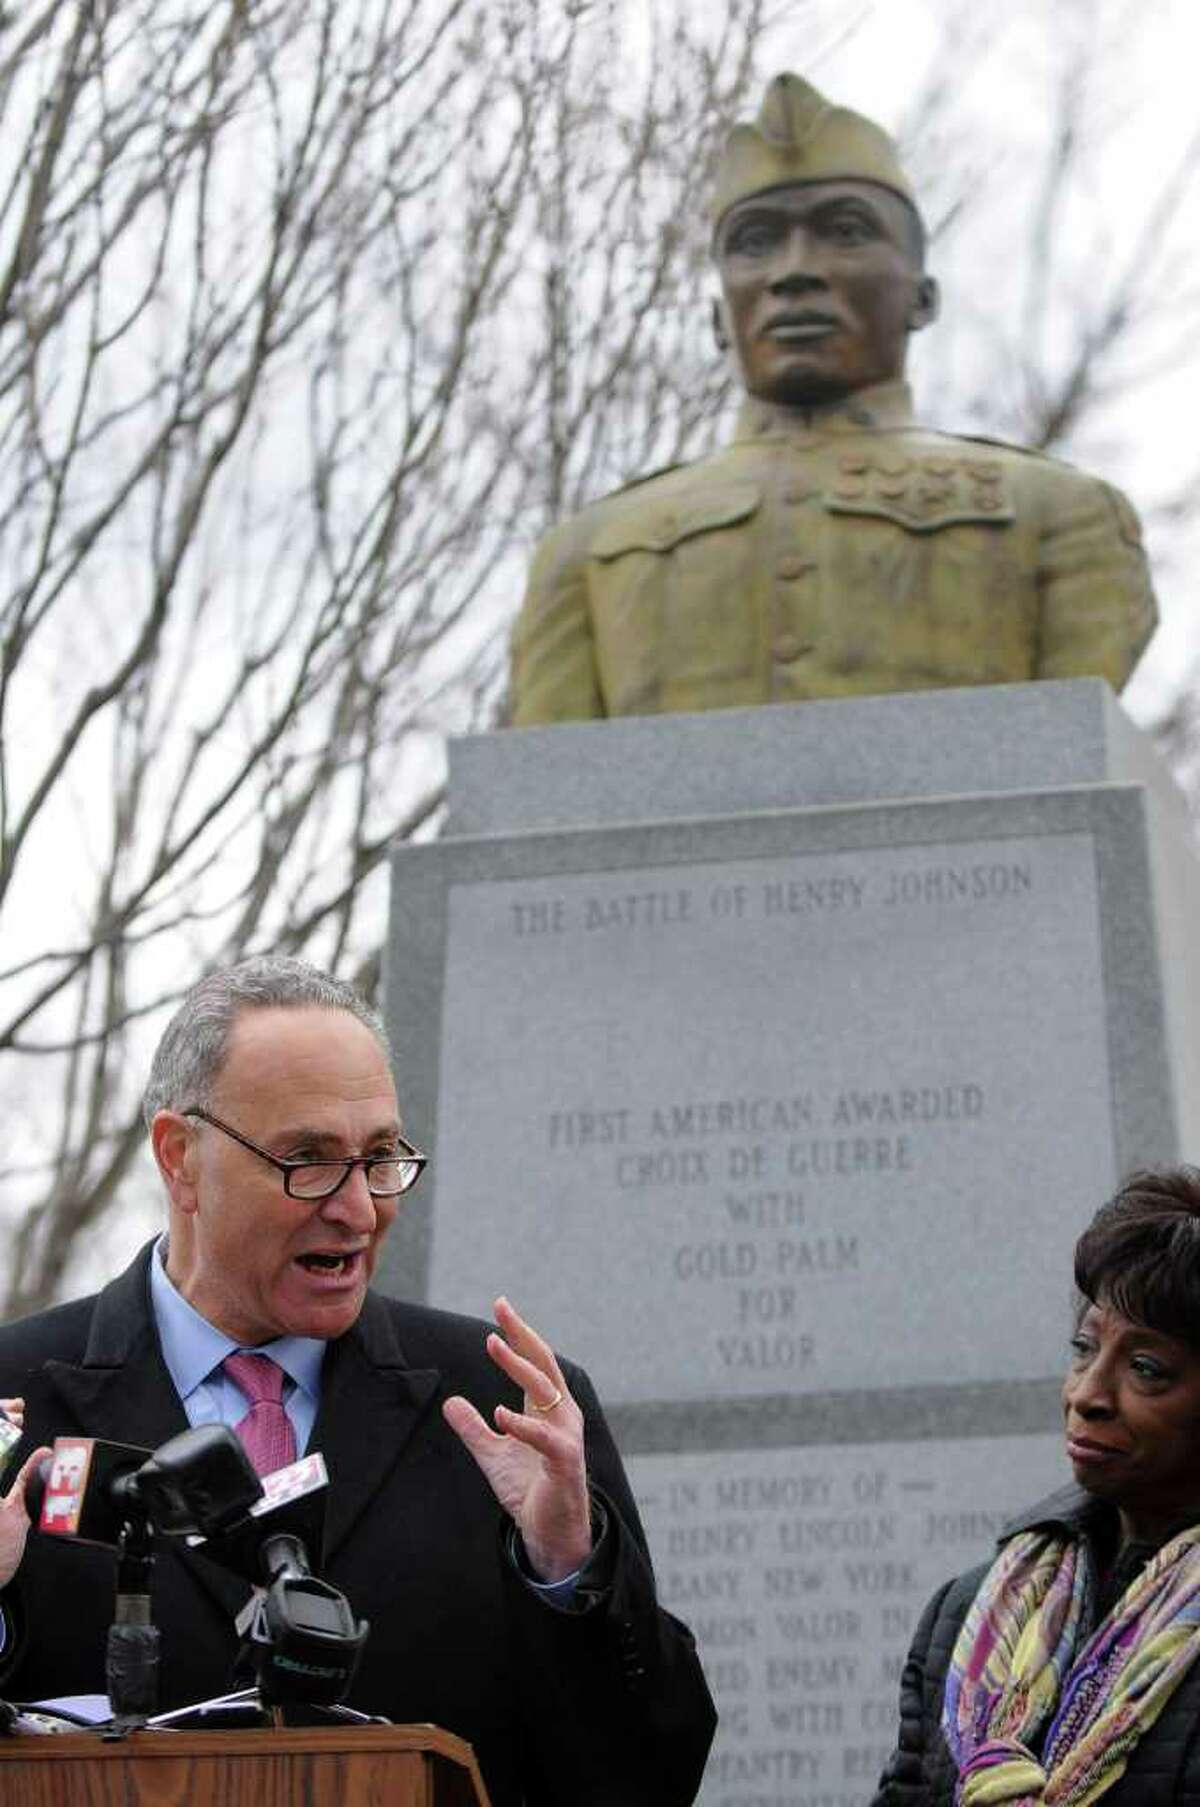 U.S. Senator Charles E. Schumer announces that newly discovered documents will enhance Sgt. Henry Johnson's chance of receiving the Medal of Honor, at the World War I hero's statue in Washington Park on Tuesday, March 22, 2011, in Albany, NY. Albany County Legislator Lucille McKnight is at right. ( Philip Kamrass/ Times Union )